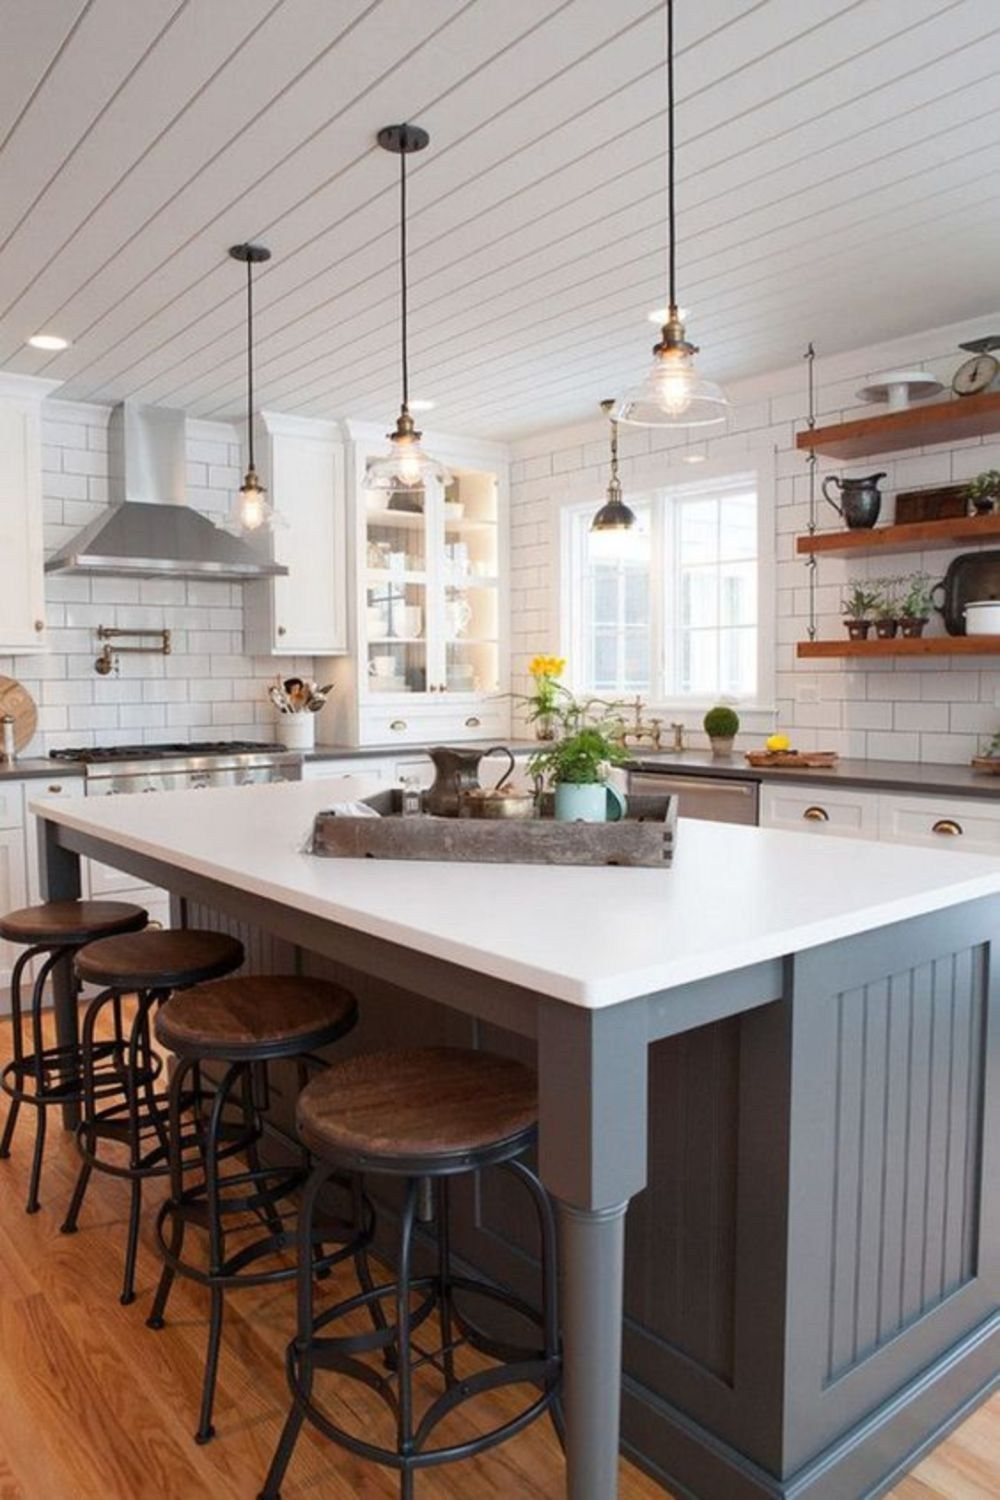 Luxury farmhouse kitchen decorating ideas (1) | Boho Chic ...